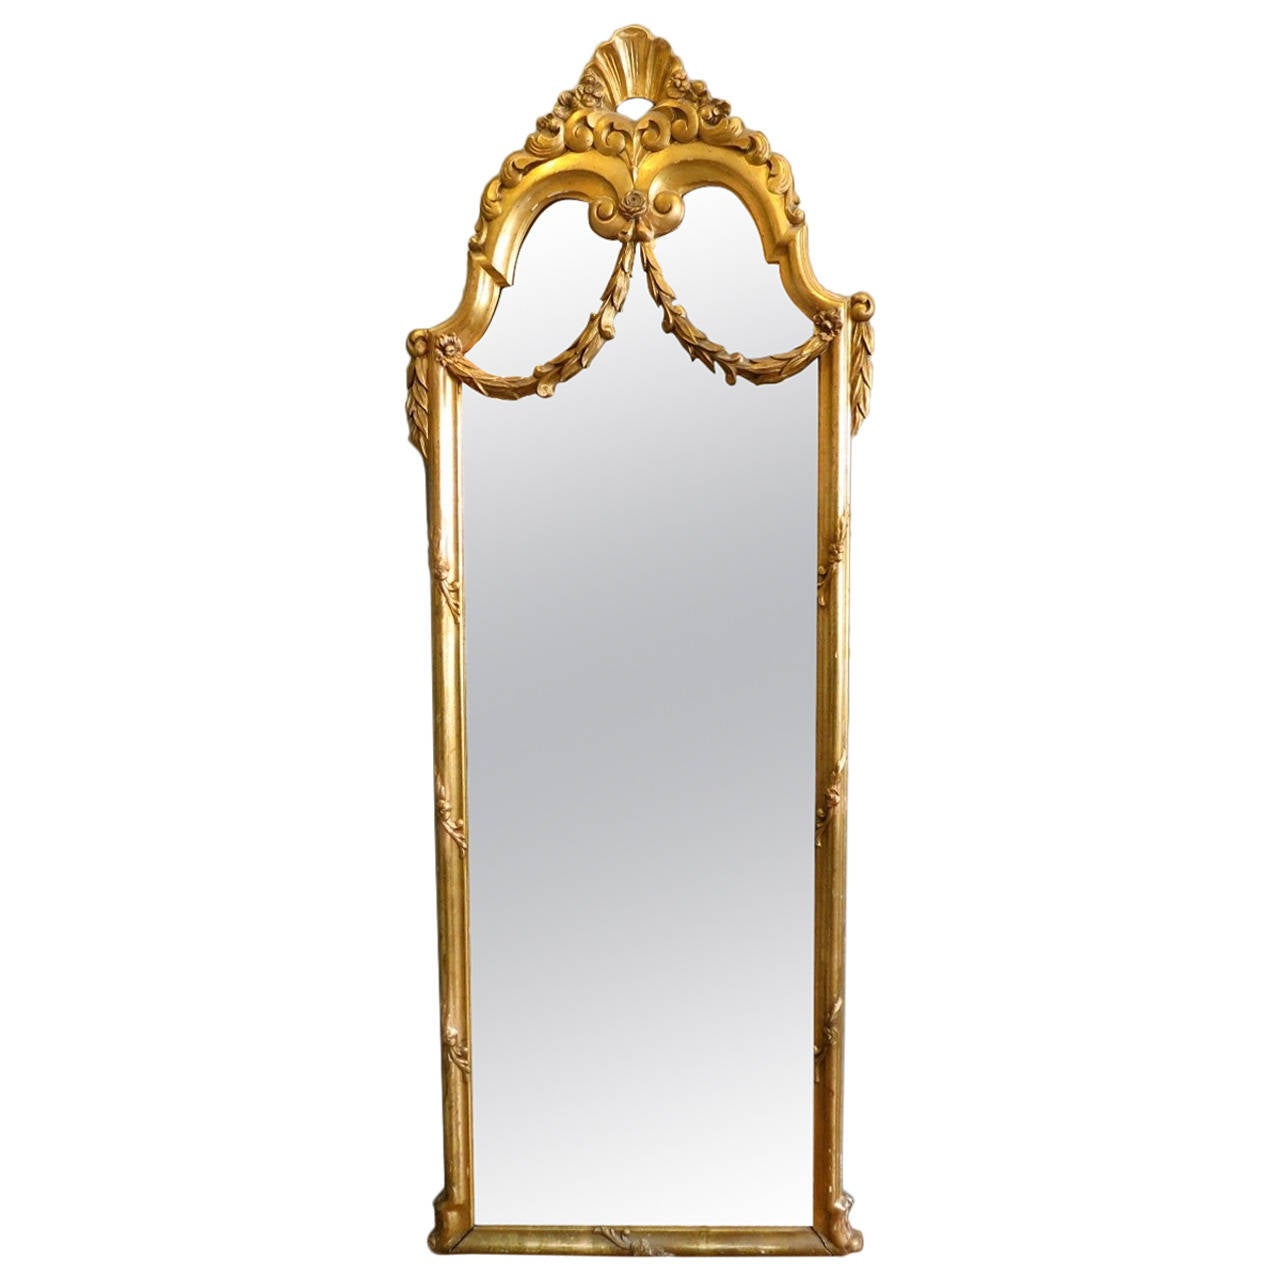 Antique french gold gilt floor standing mirror at 1stdibs for Floor length mirror for sale